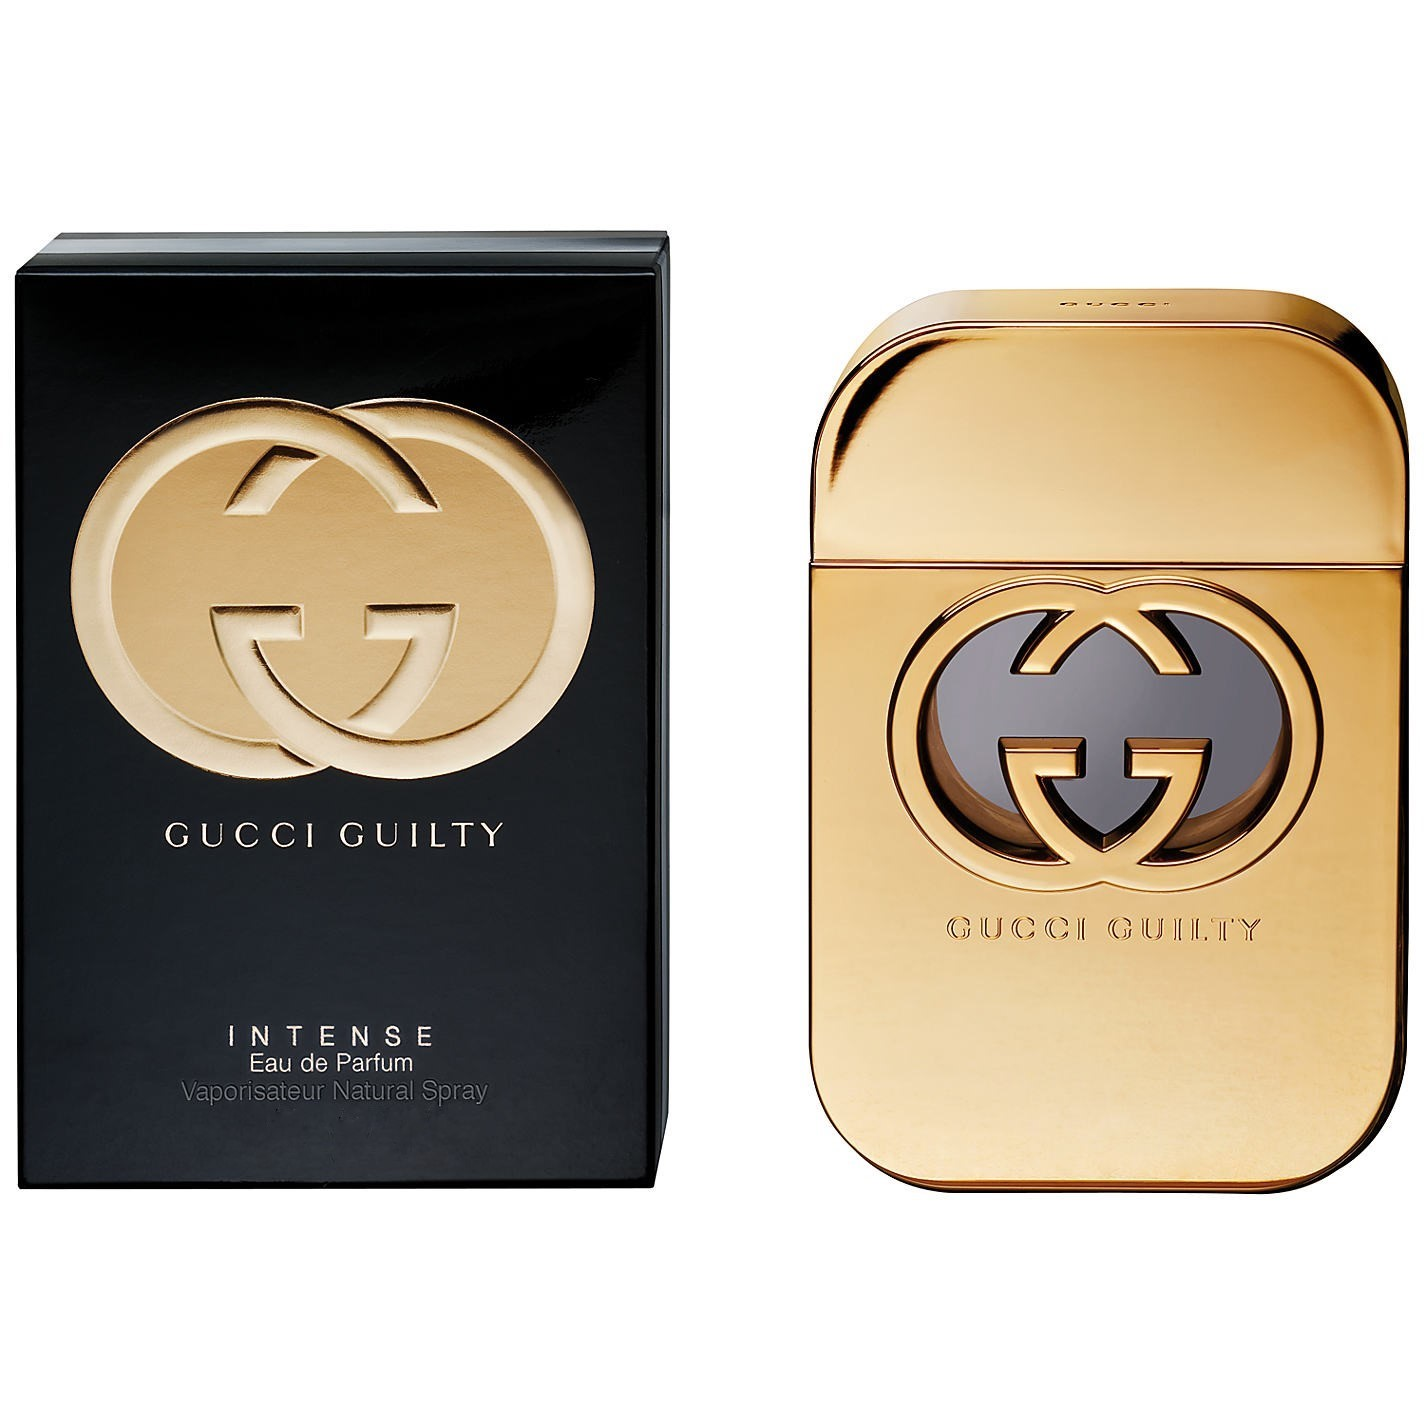 Парфюмерная вода Gucci Guilty Intense 30ml фото